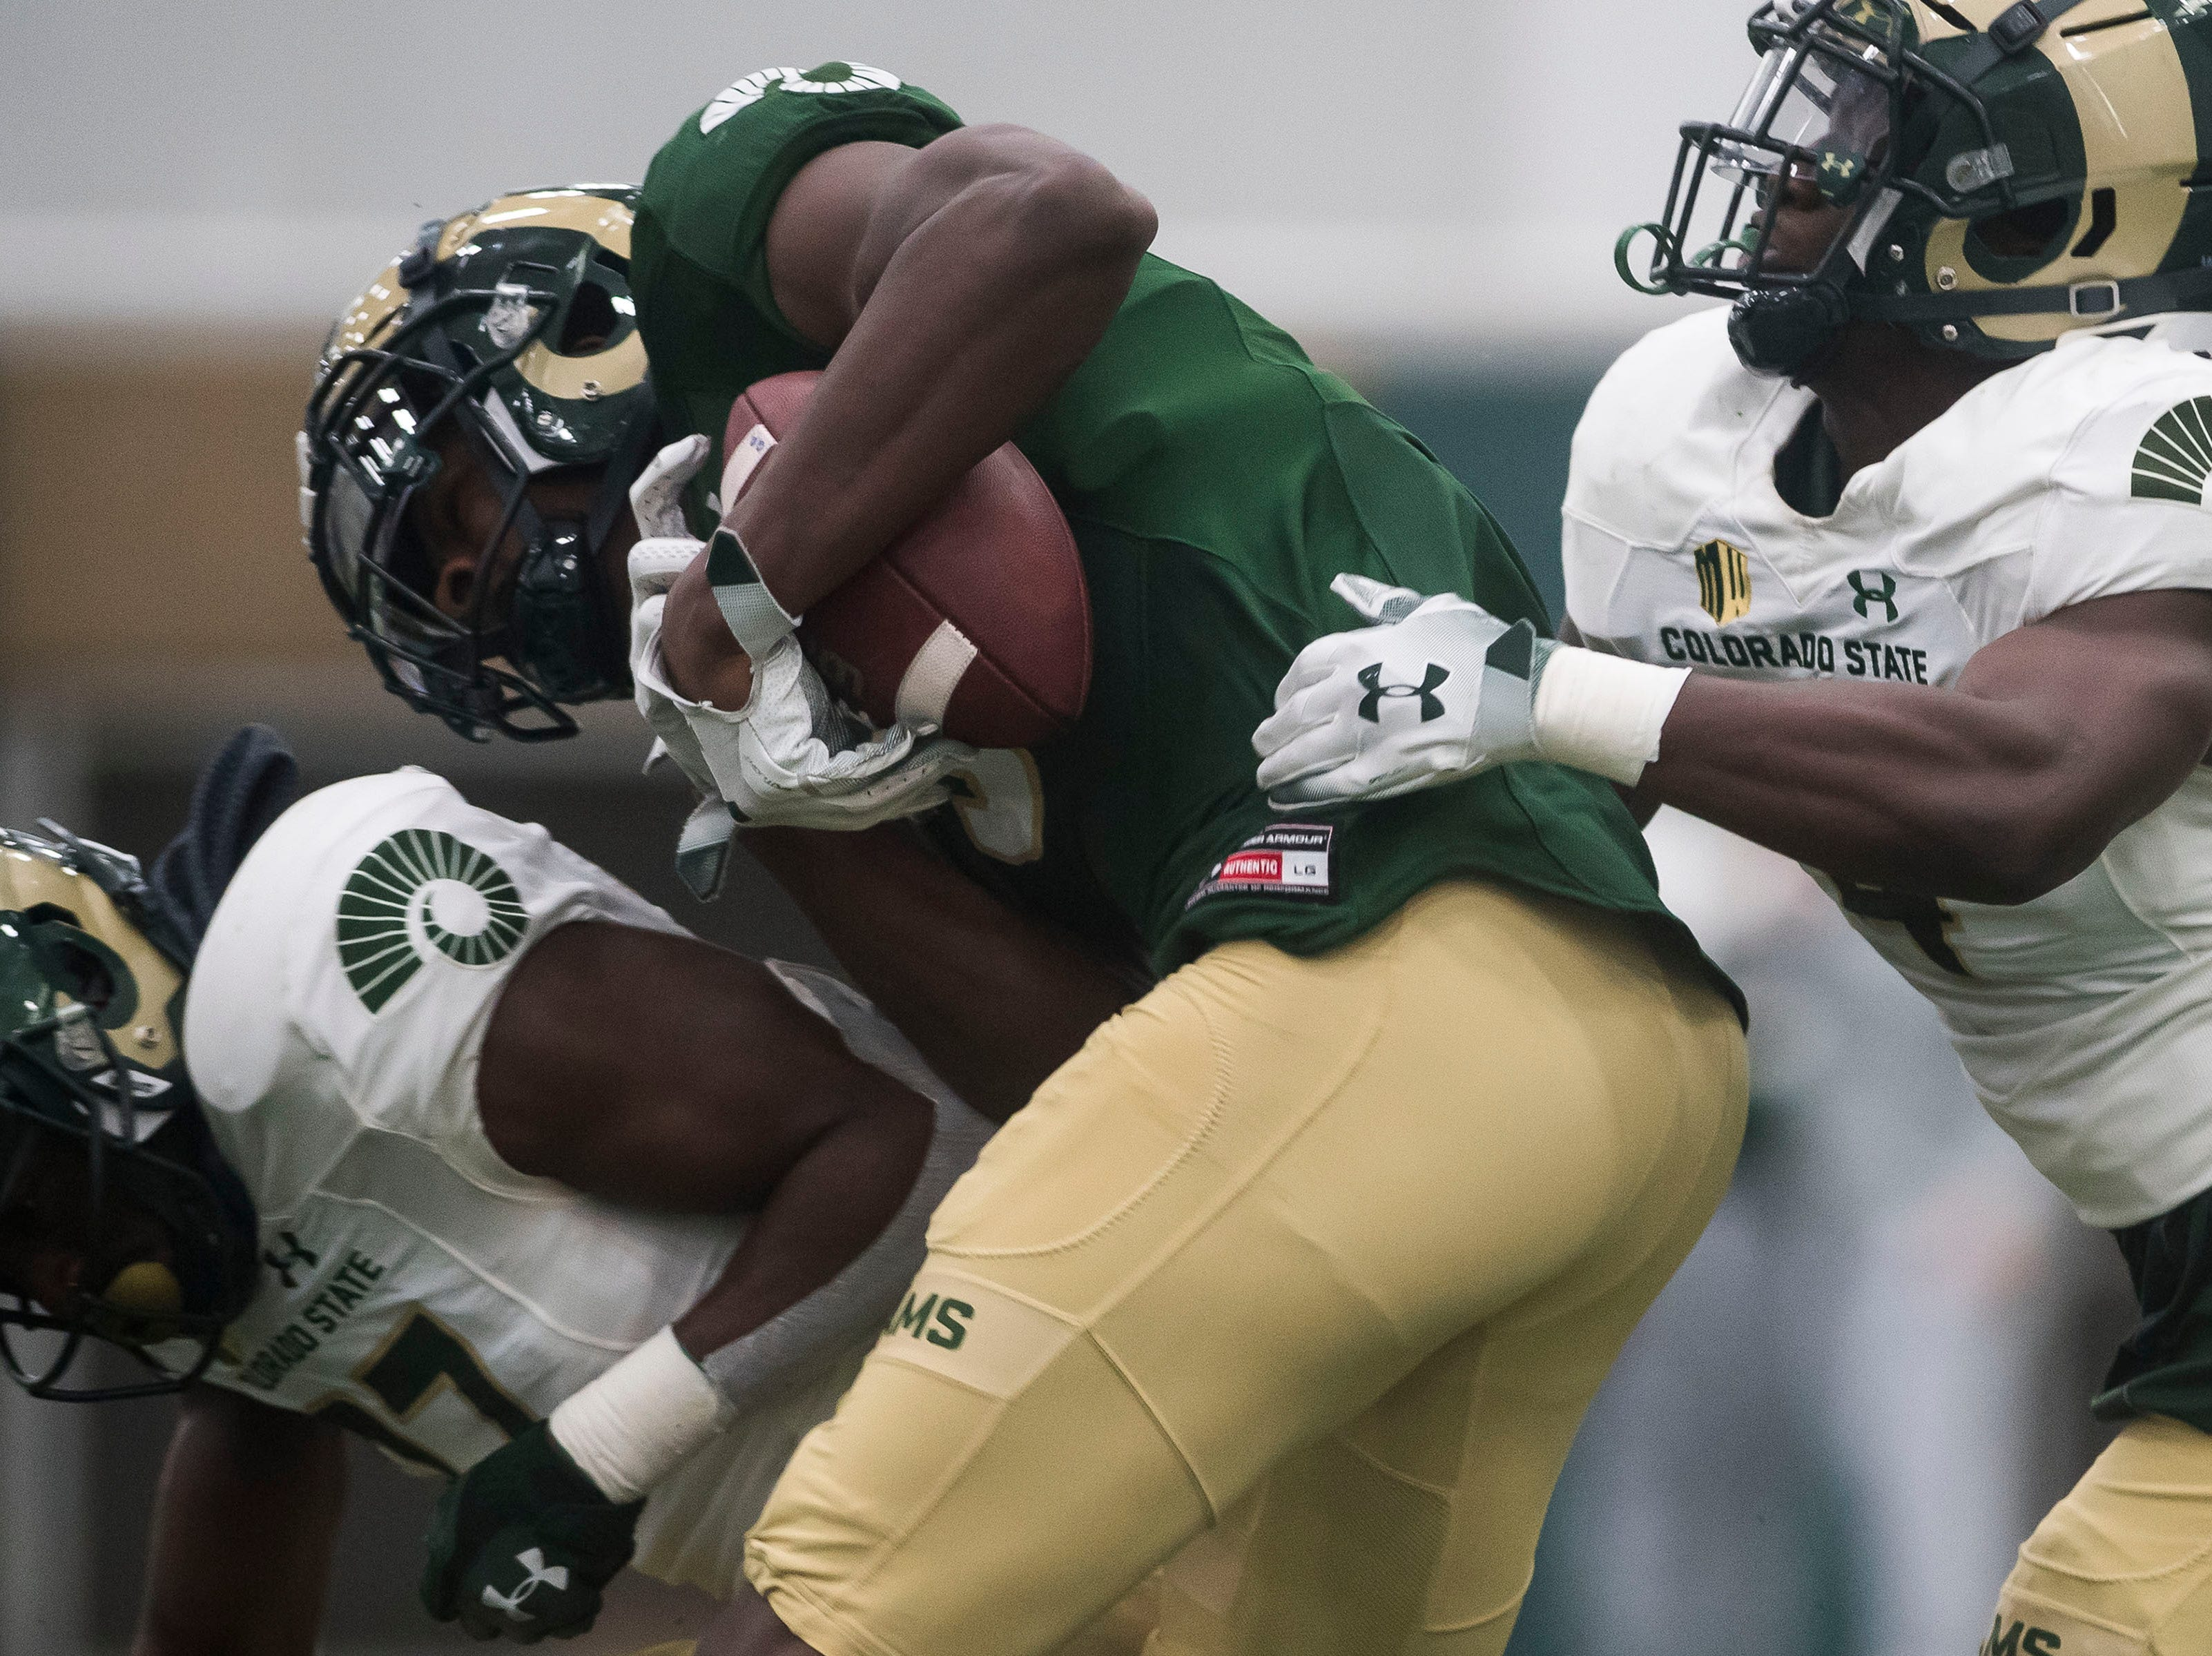 CSU junior wide receiver Warren Jackson (9) pulls in a touchdown reception while being defended by sophomore cornerback Rashad Ajayi (4) and junior linebacker Logan Stewart (37) during CSU's Spring game on Thursday, March 14, 2019, at their indoor practice facility in Fort Collins, Colo.